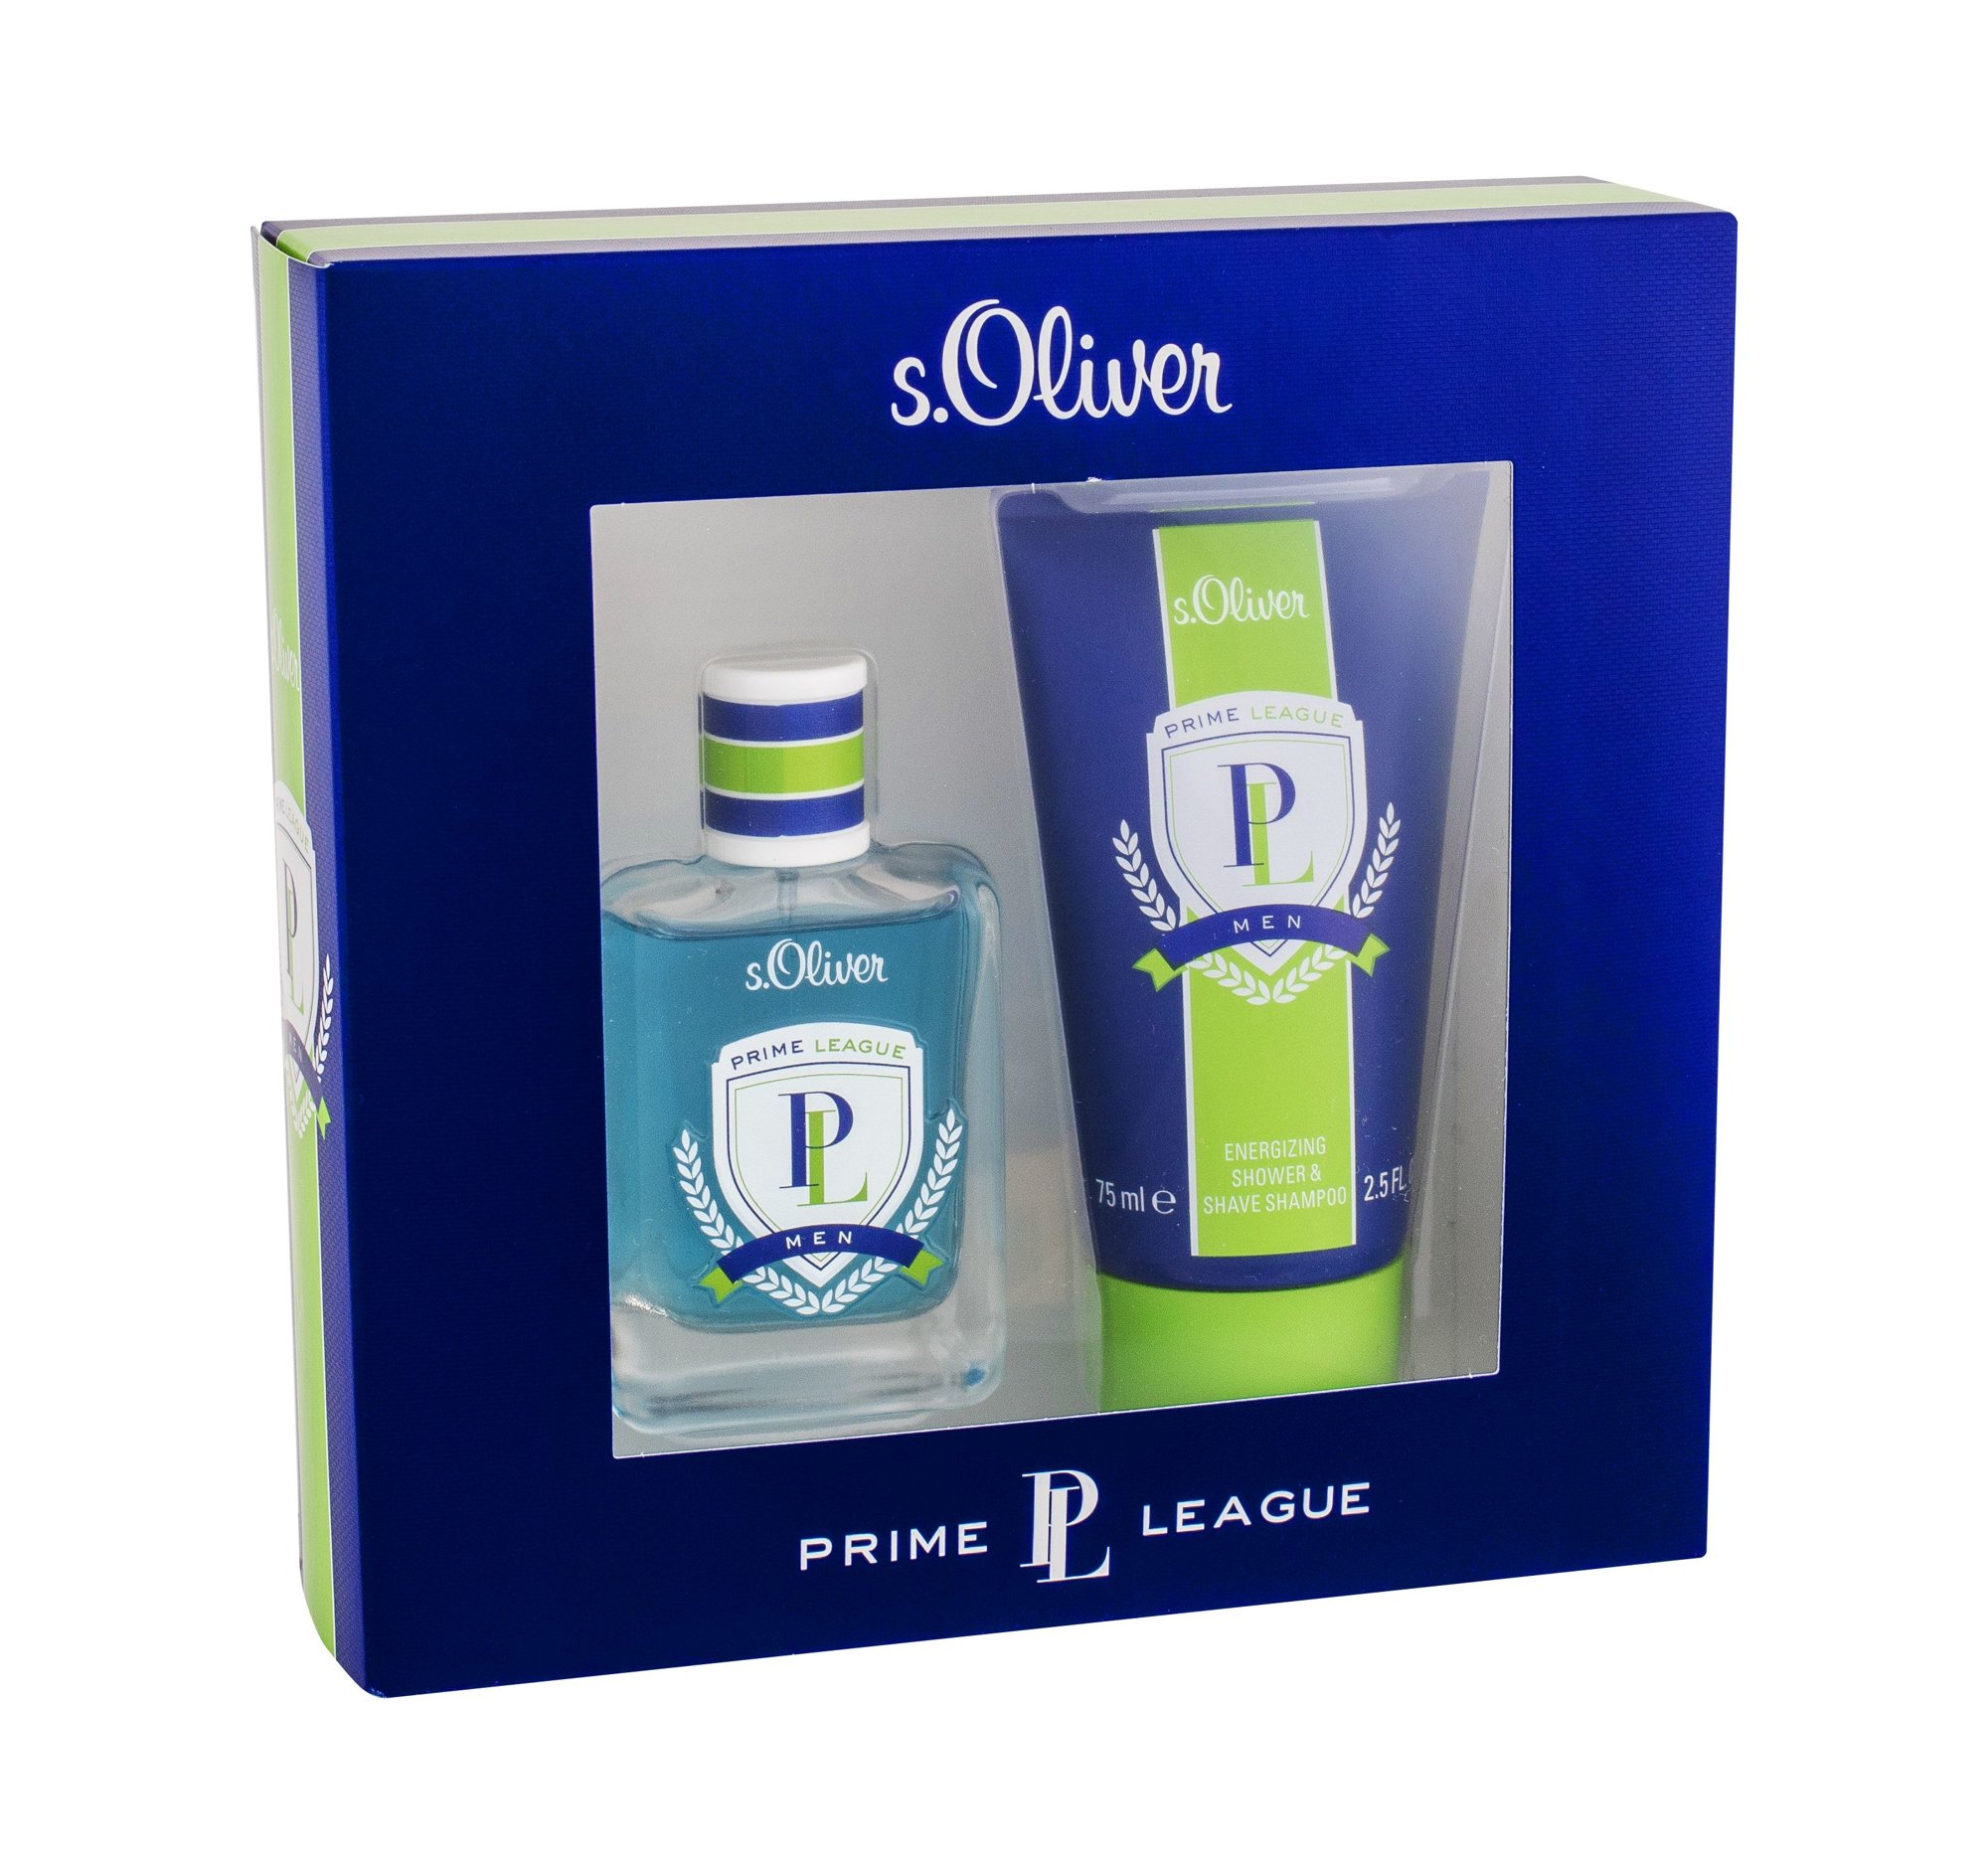 s.Oliver Prime League Eau de Toilette 30ml